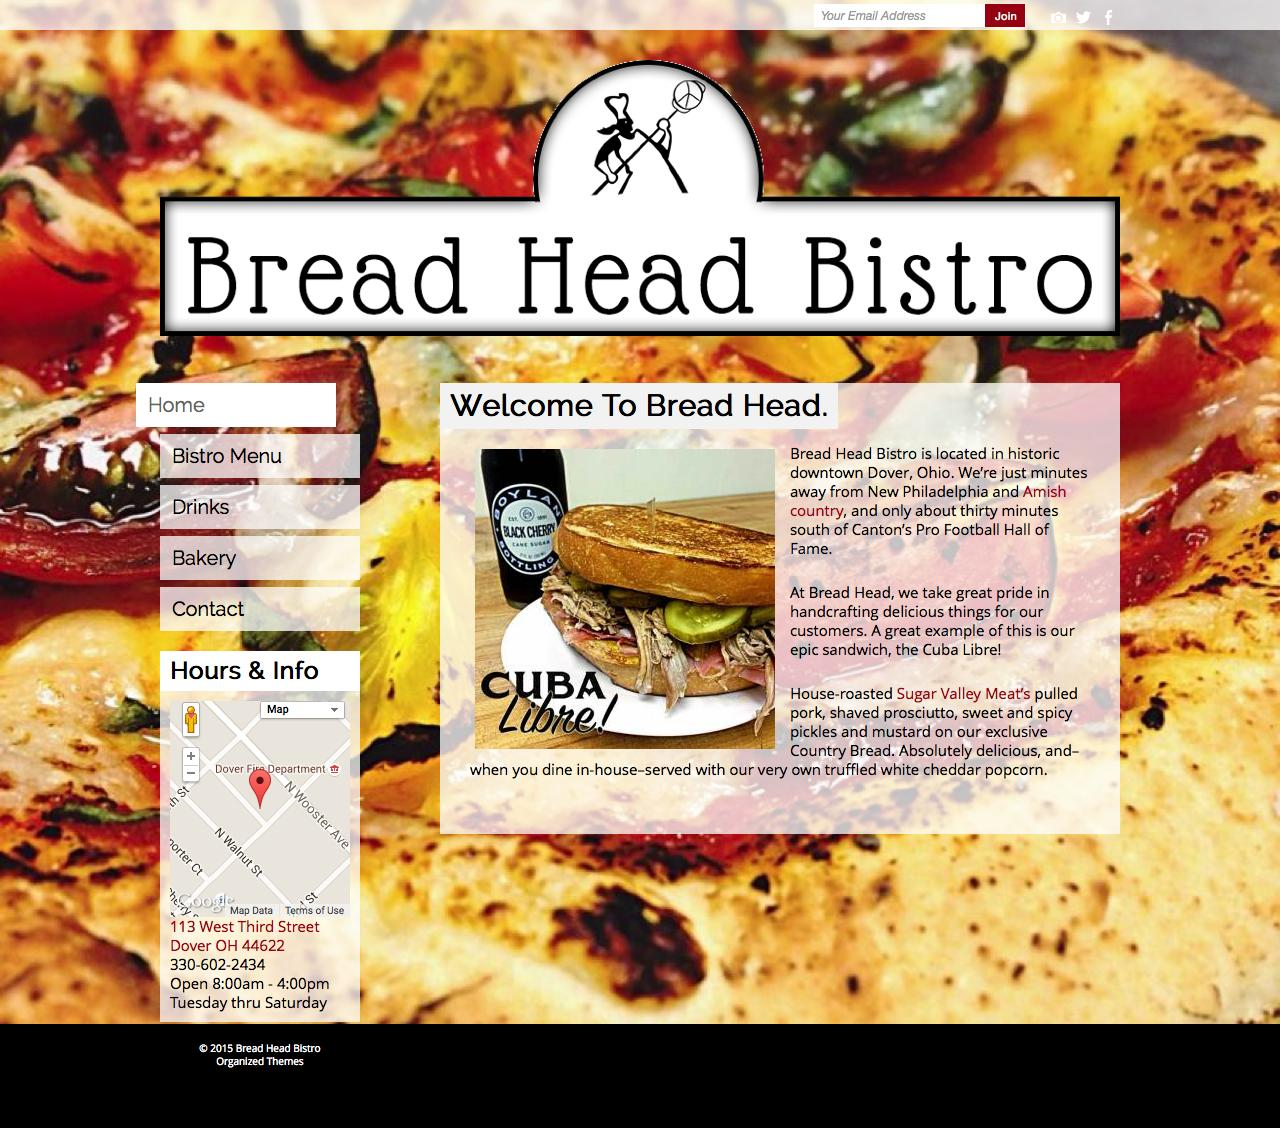 Screenshot of breadheadbistro.com - Bread Head Bistro - captured Sept. 8, 2015